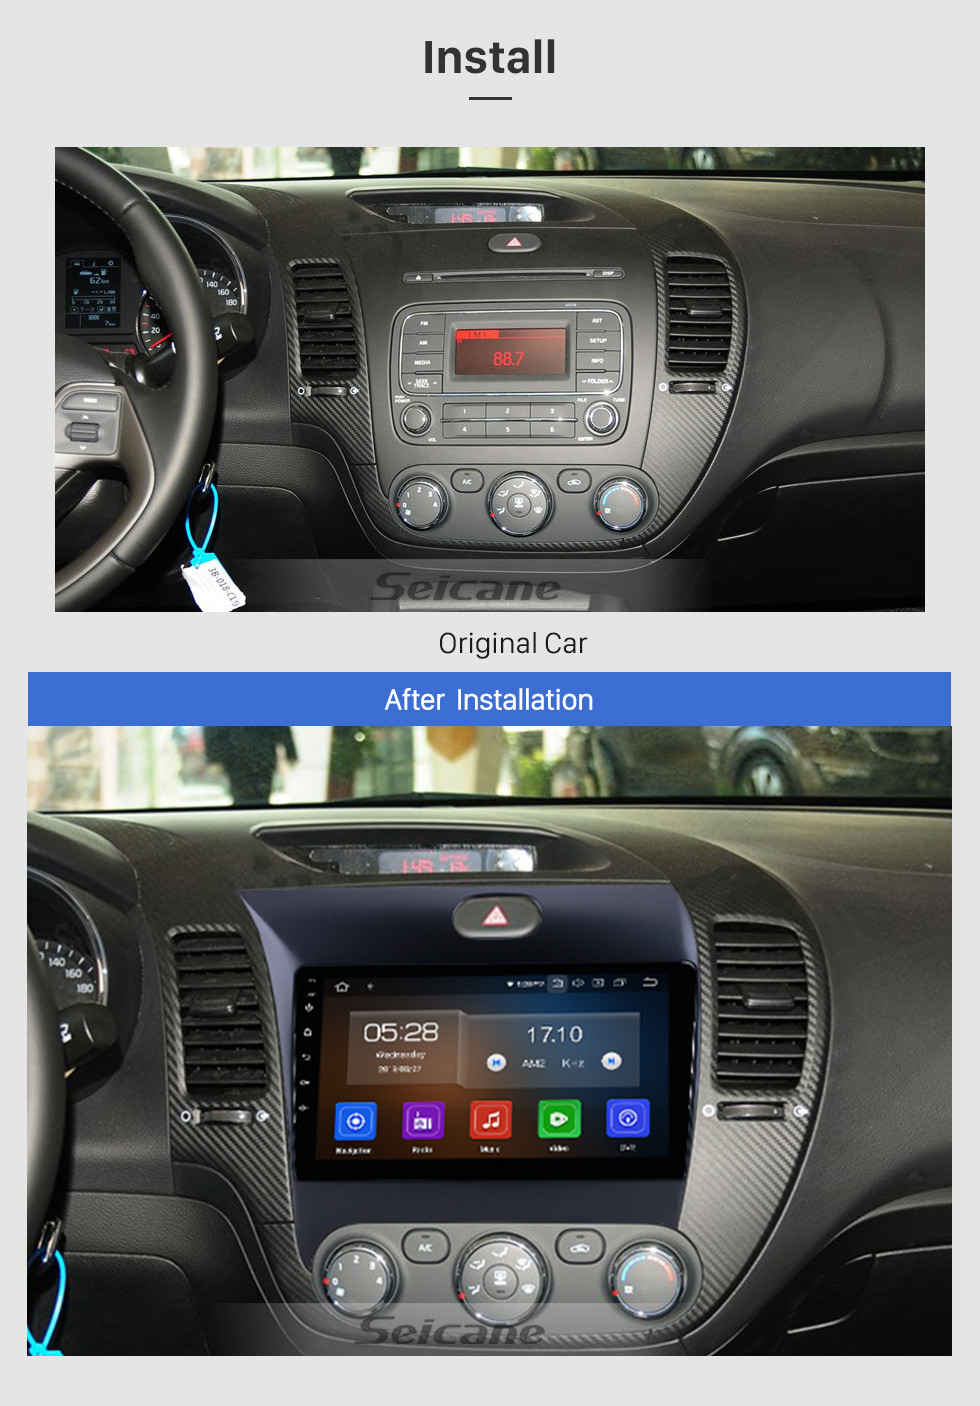 Seicane 9 inch Android 10.0 For 2013 2014 2015 2016 Kia K3 LHD GPS Navigation System Radio with HD Touch Screen Bluetooth support 3G Backup Camera Carplay